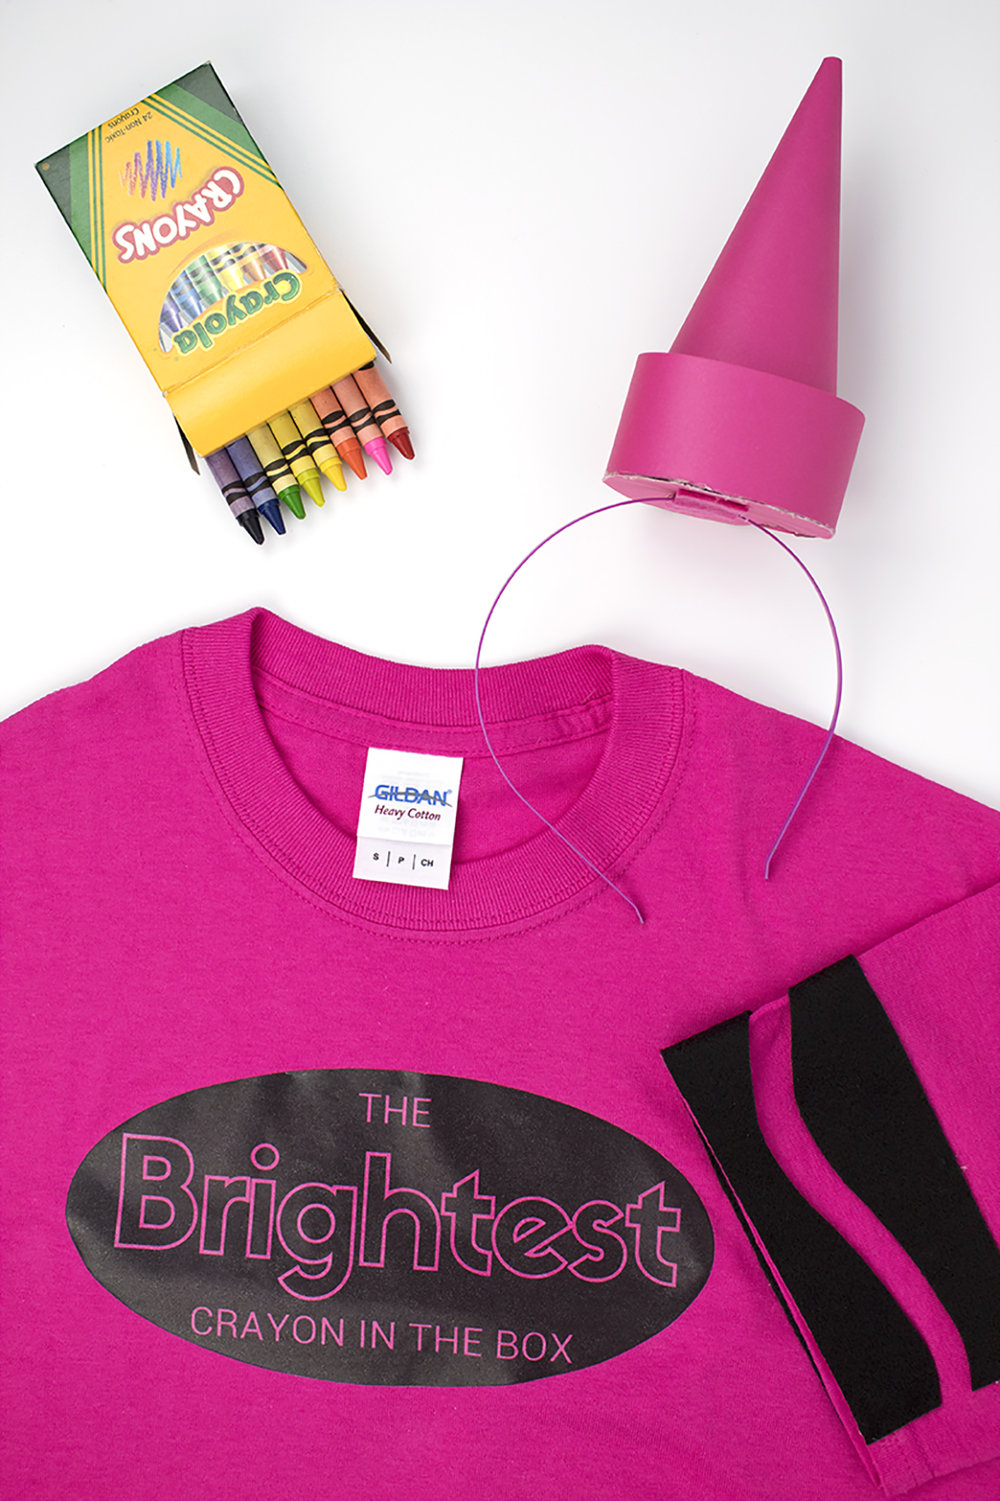 Why be an ordinary crayon when you can be the BRIGHTEST crayon in the box? & DIY Brightest Crayon Costume u2014 Party HarDIY